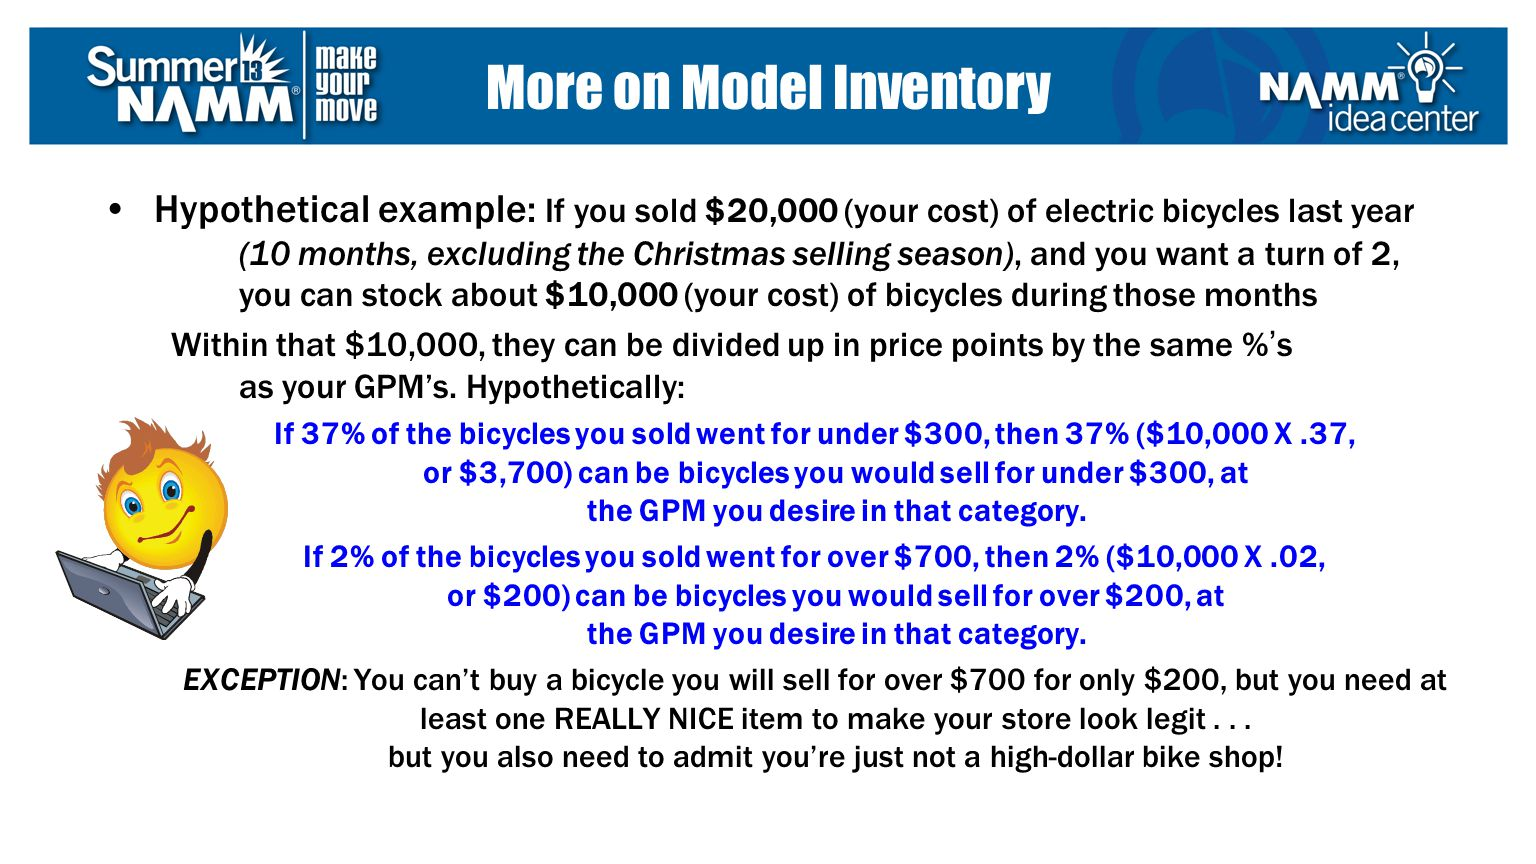 Hypothetical example: If you sold $20,000 (your cost) of electric bicycles last year (10 months, excluding the Christmas selling season), and you want